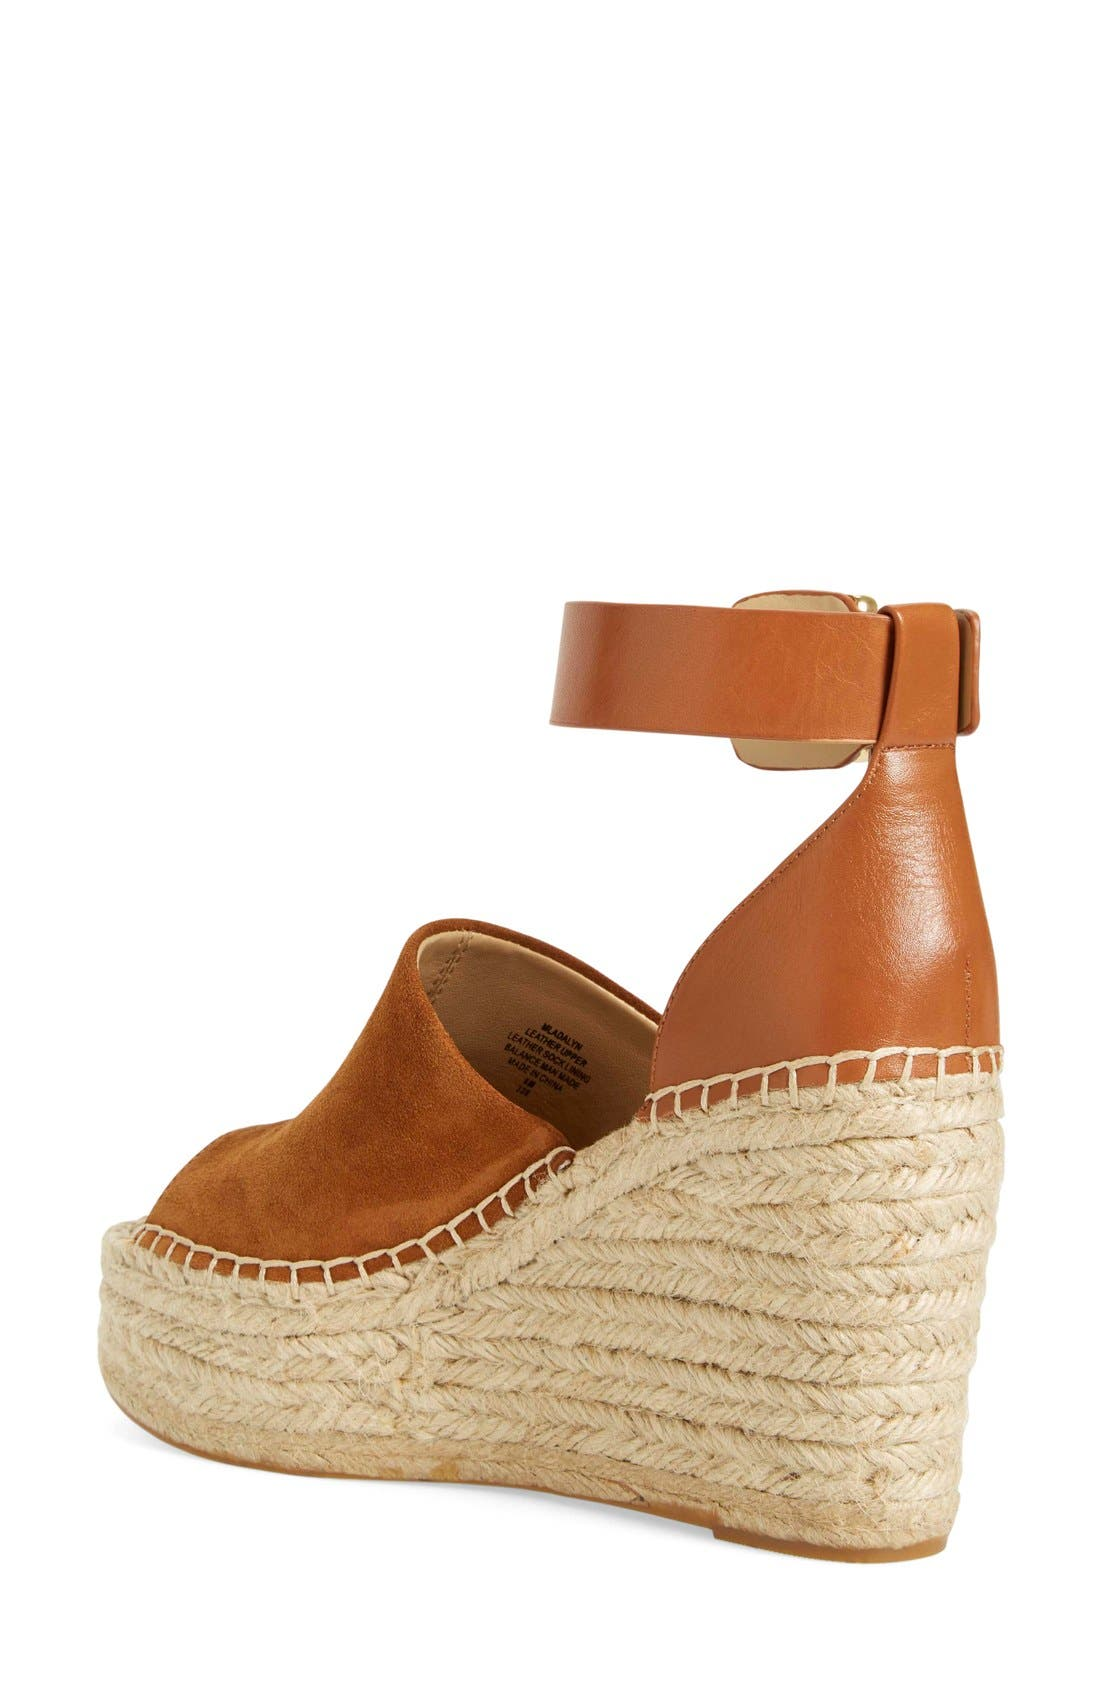 Alternate Image 2  - Marc Fisher LTD 'Adalyn' Espadrille Wedge Sandal (Women)